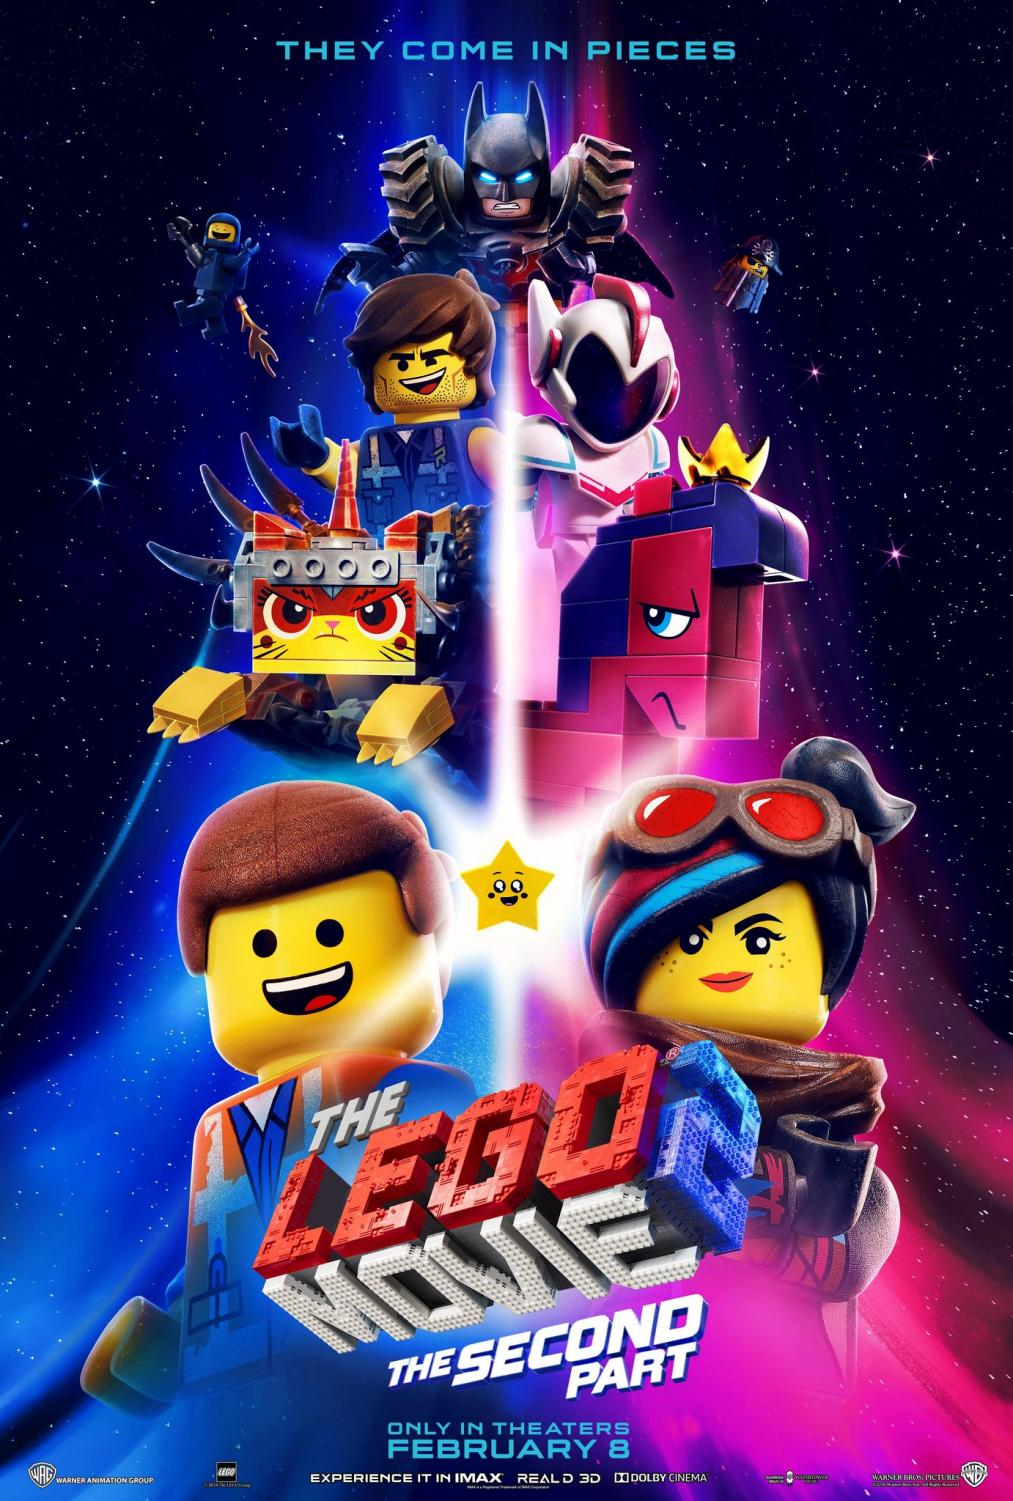 The Lego Movie 2 was released to theatres on Feb. 8. Photo courtesy of IMDB.